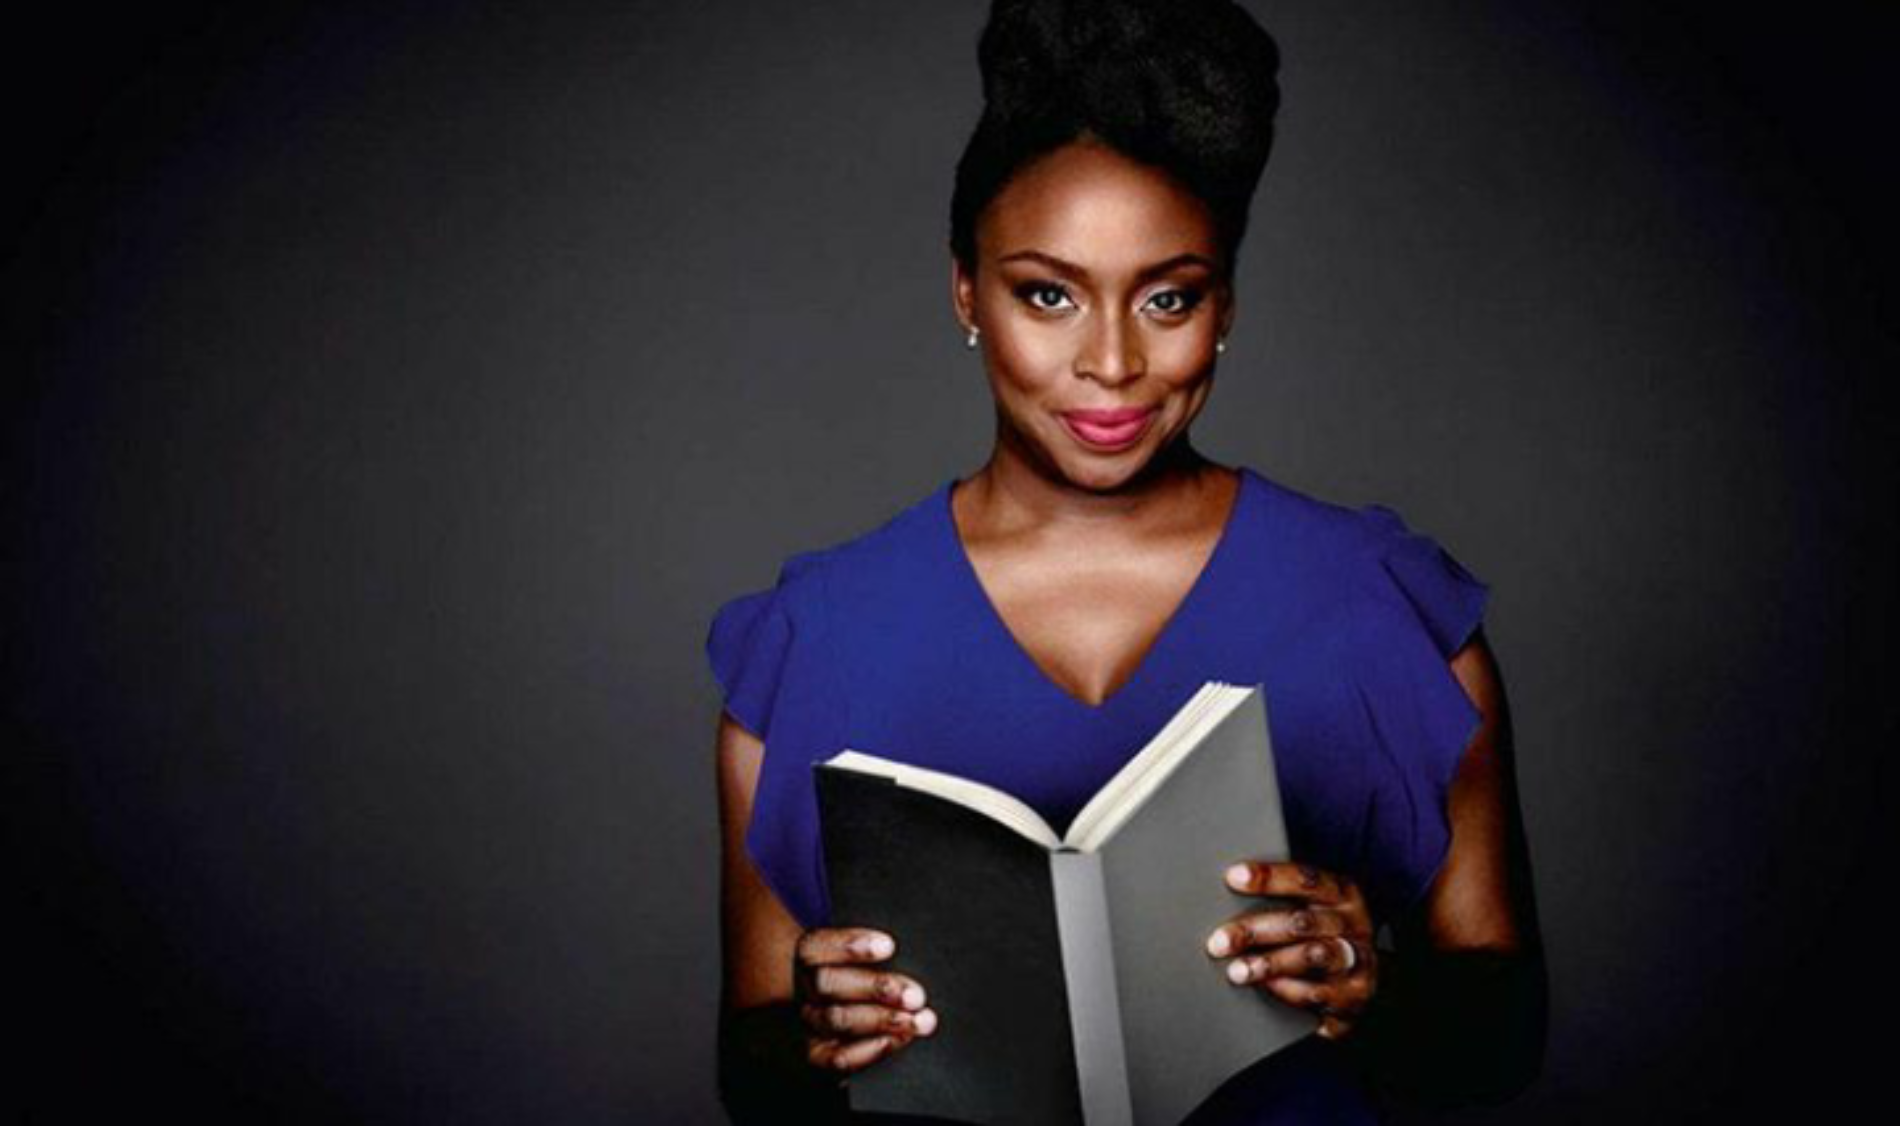 Chimamanda Adichie's epic clapback when asked if Nigeria has bookshops